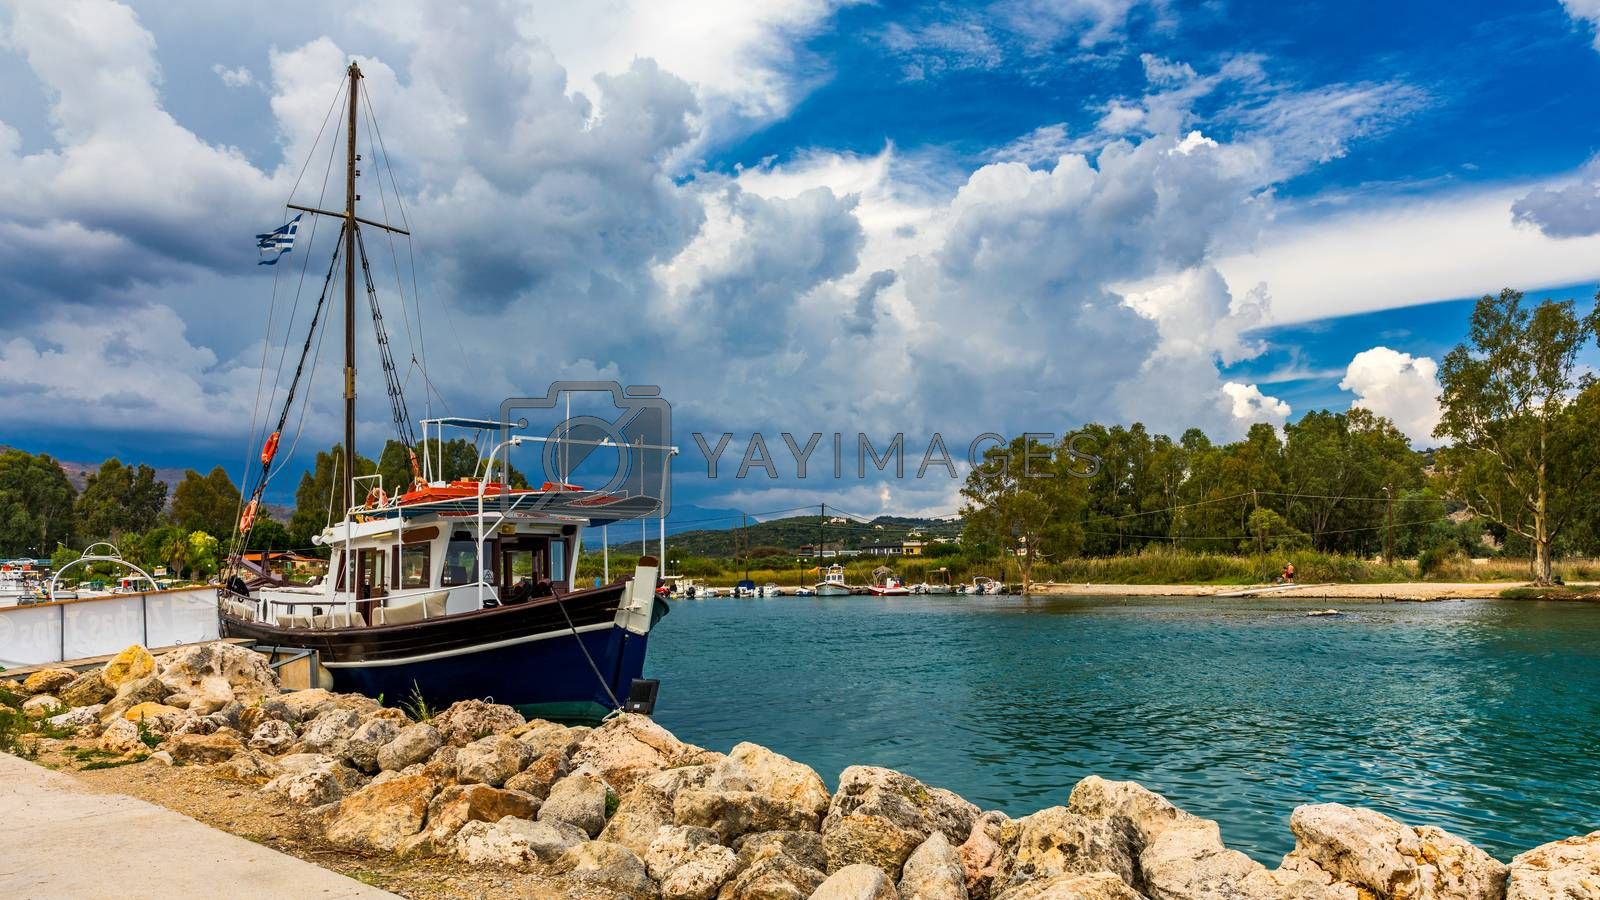 Georgioupoli is a resort village and former municipality in the Chania regional unit, Crete, Greece. Fishing boat in harbour Georgioupolis. Sea, ship and sky with clouds. River Almyros.